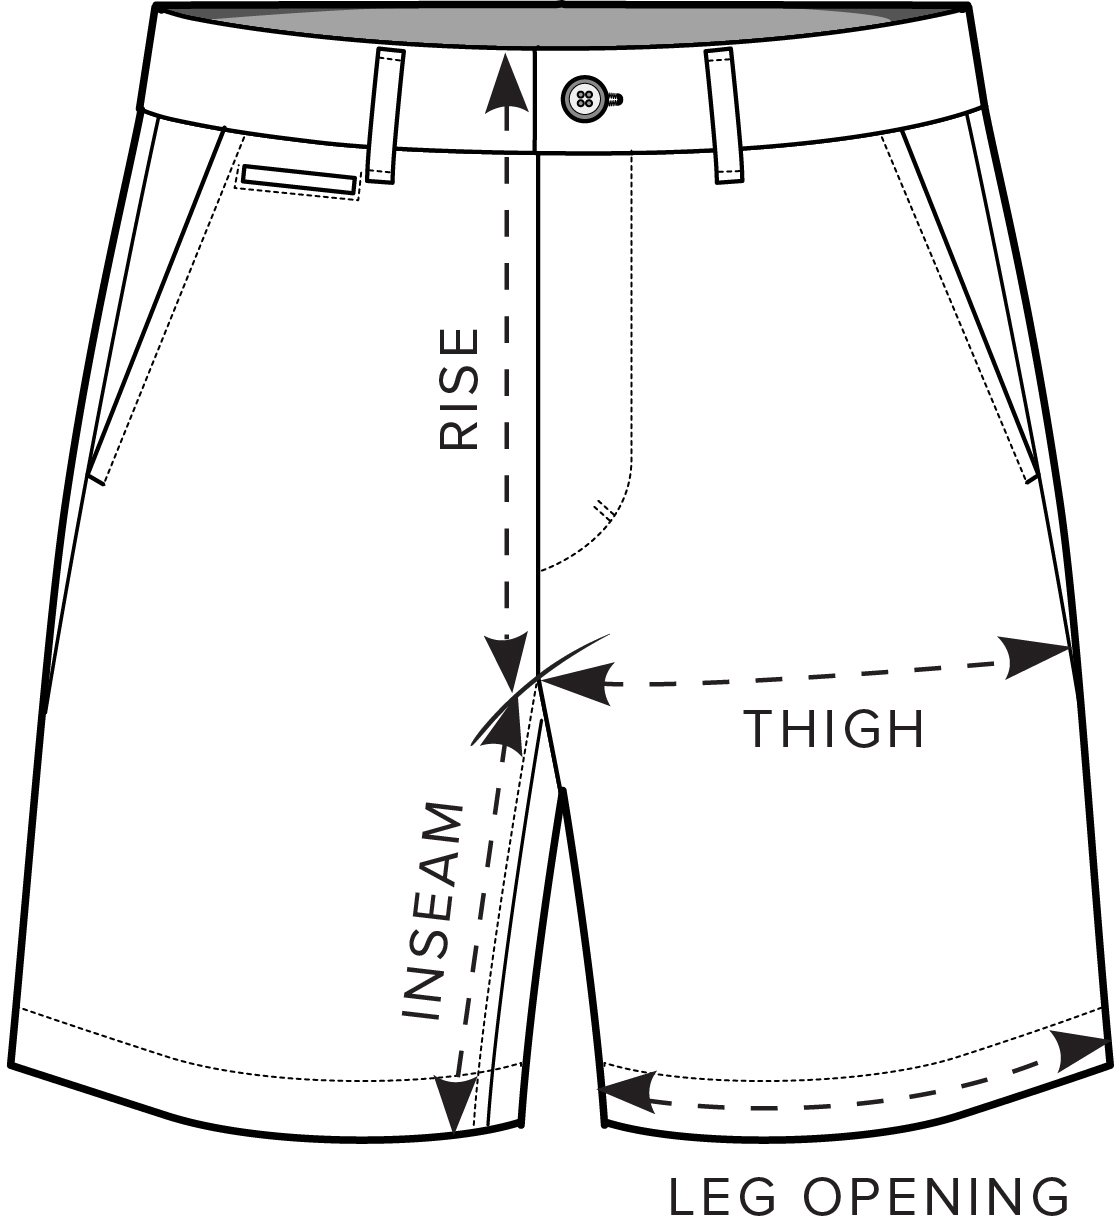 Shorts Measurement Guid